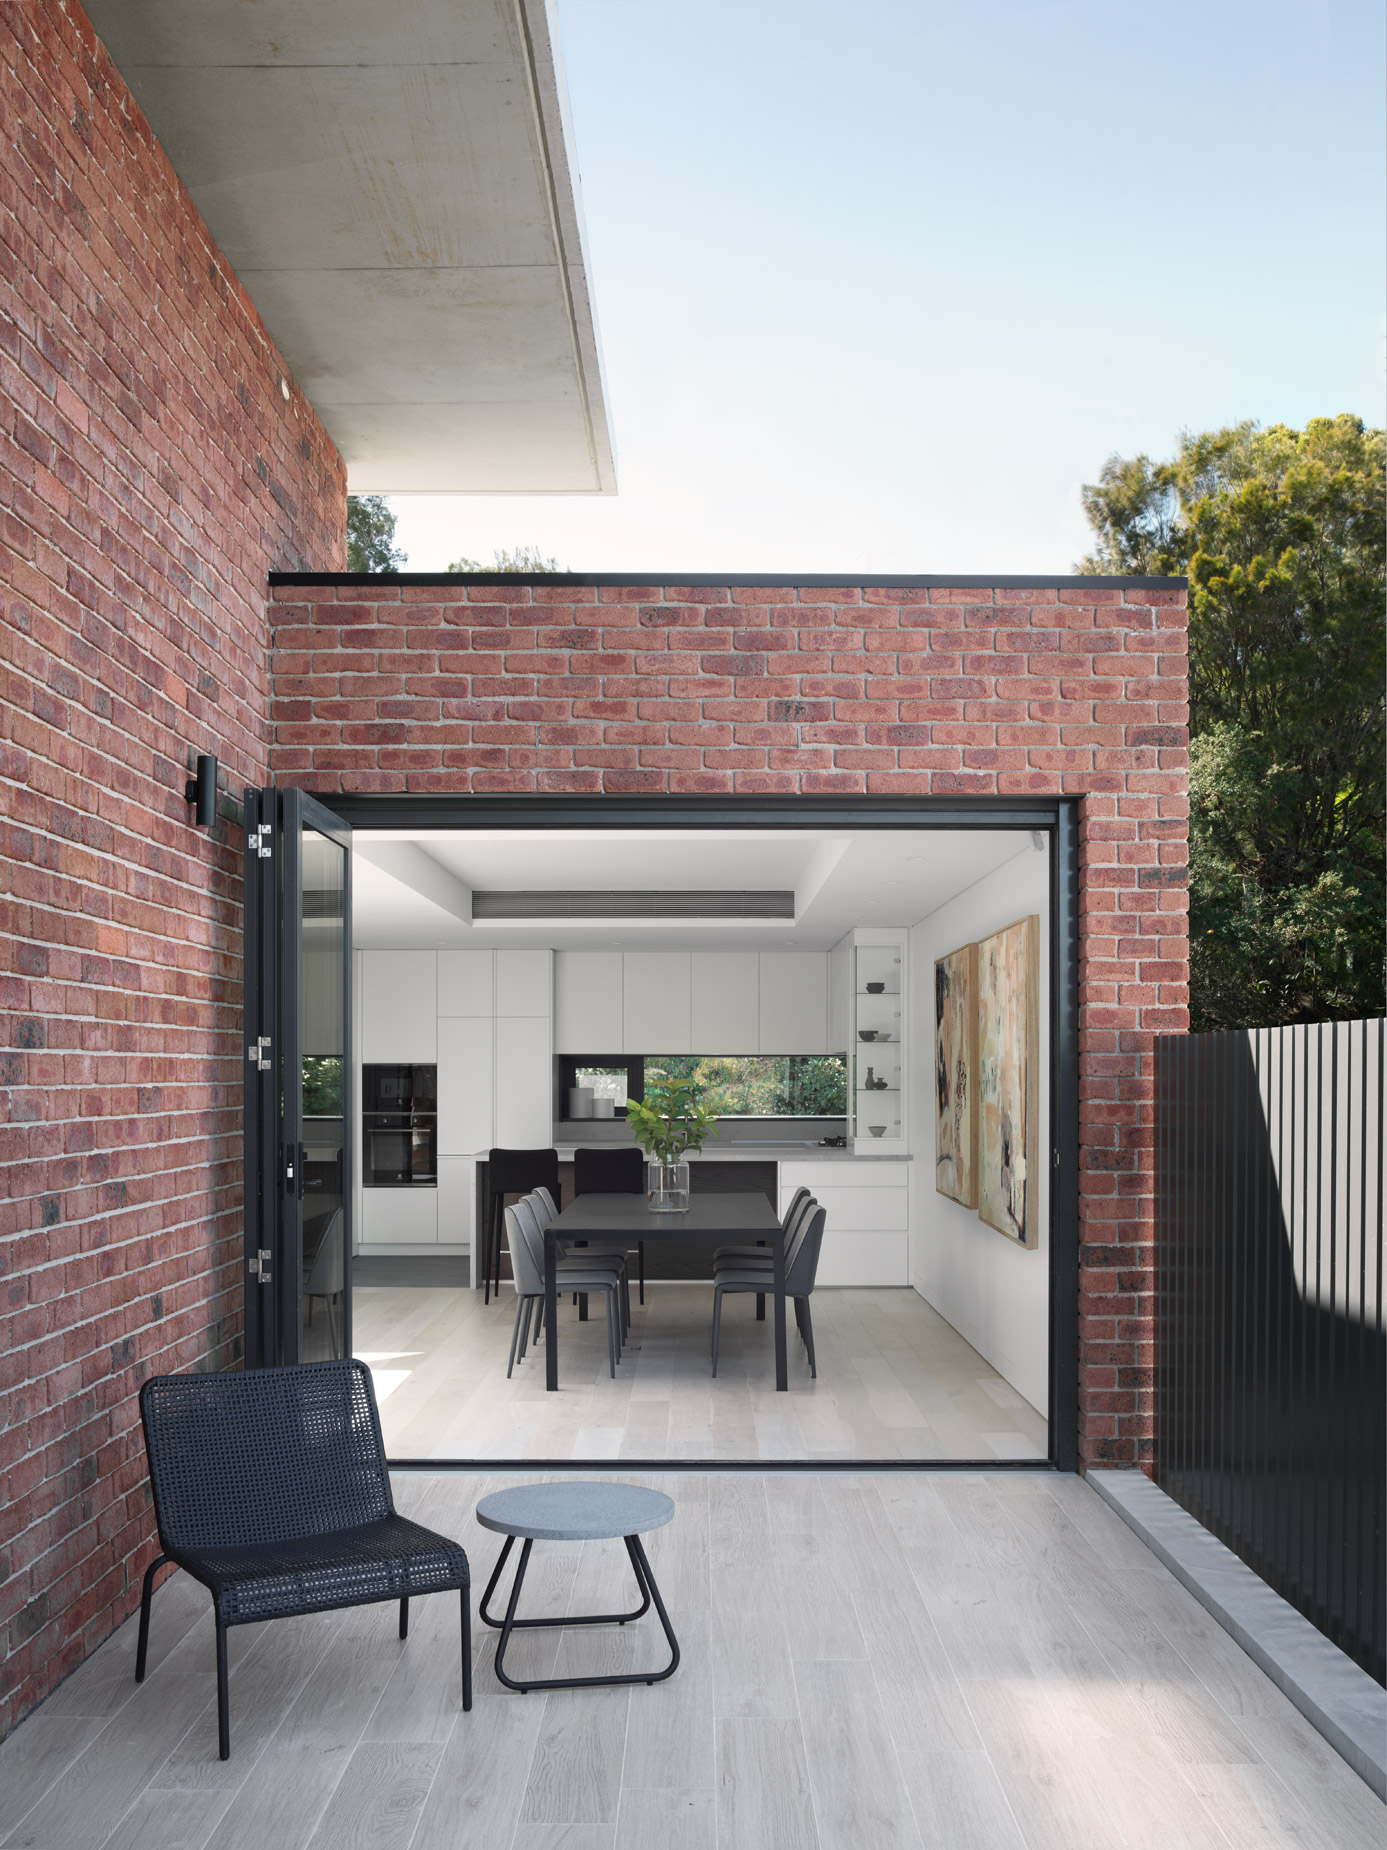 luke-butterly-2020-Cove-Cove-House-by-Dieppe-Design-Architecture-Sydney-NSW-8